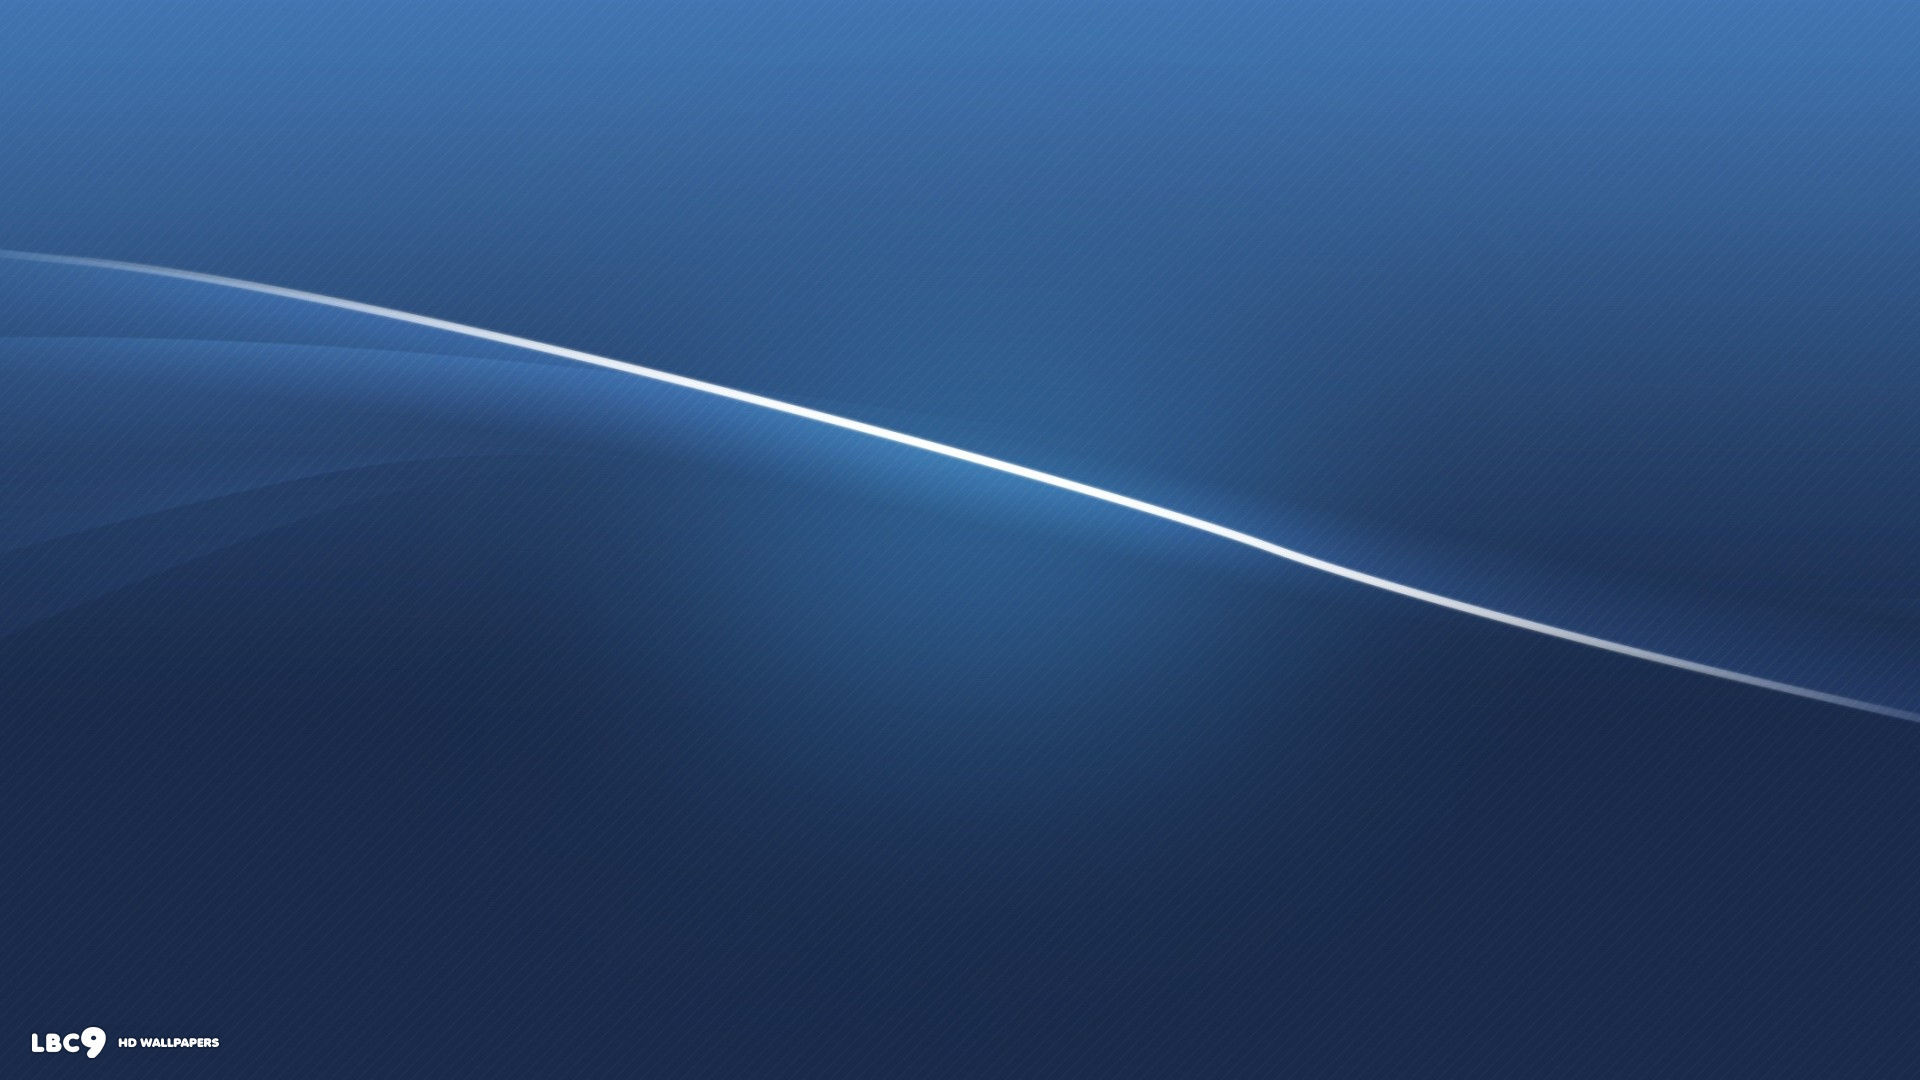 1920x1080 abstract lines simple blue